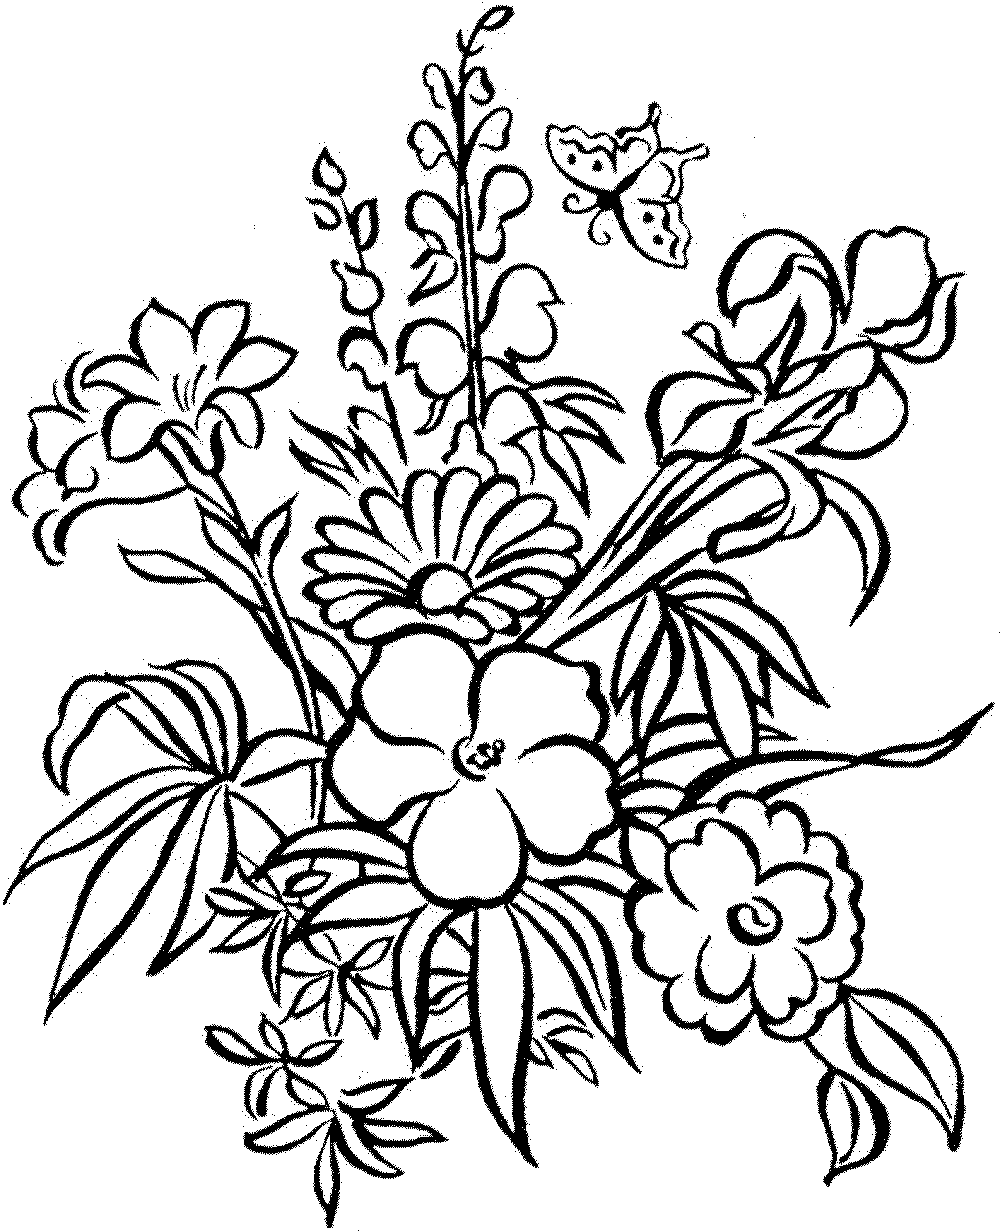 detailed flower coloring pages get this detailed flower coloring pages for adults pages coloring detailed flower